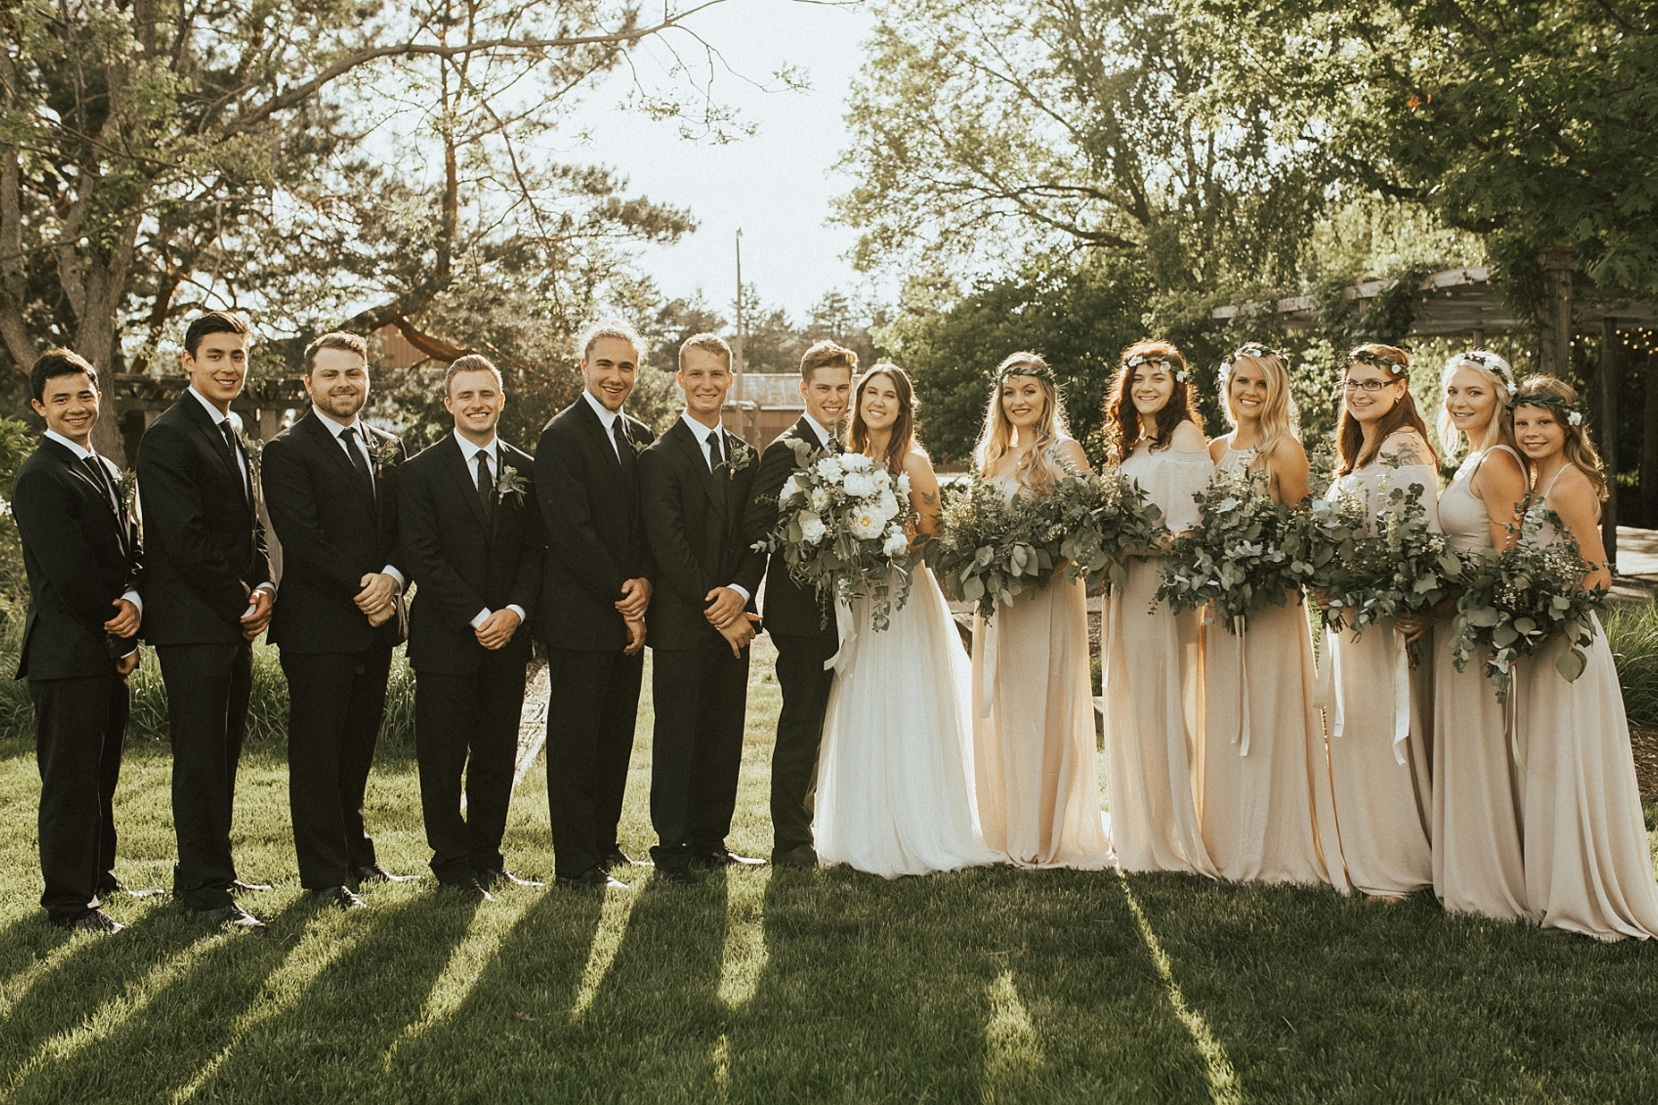 Wedding party staging photos at the Gardens of Castle Rock in Minnesota with mismatched bridesmaid dresses and taupe color palette.